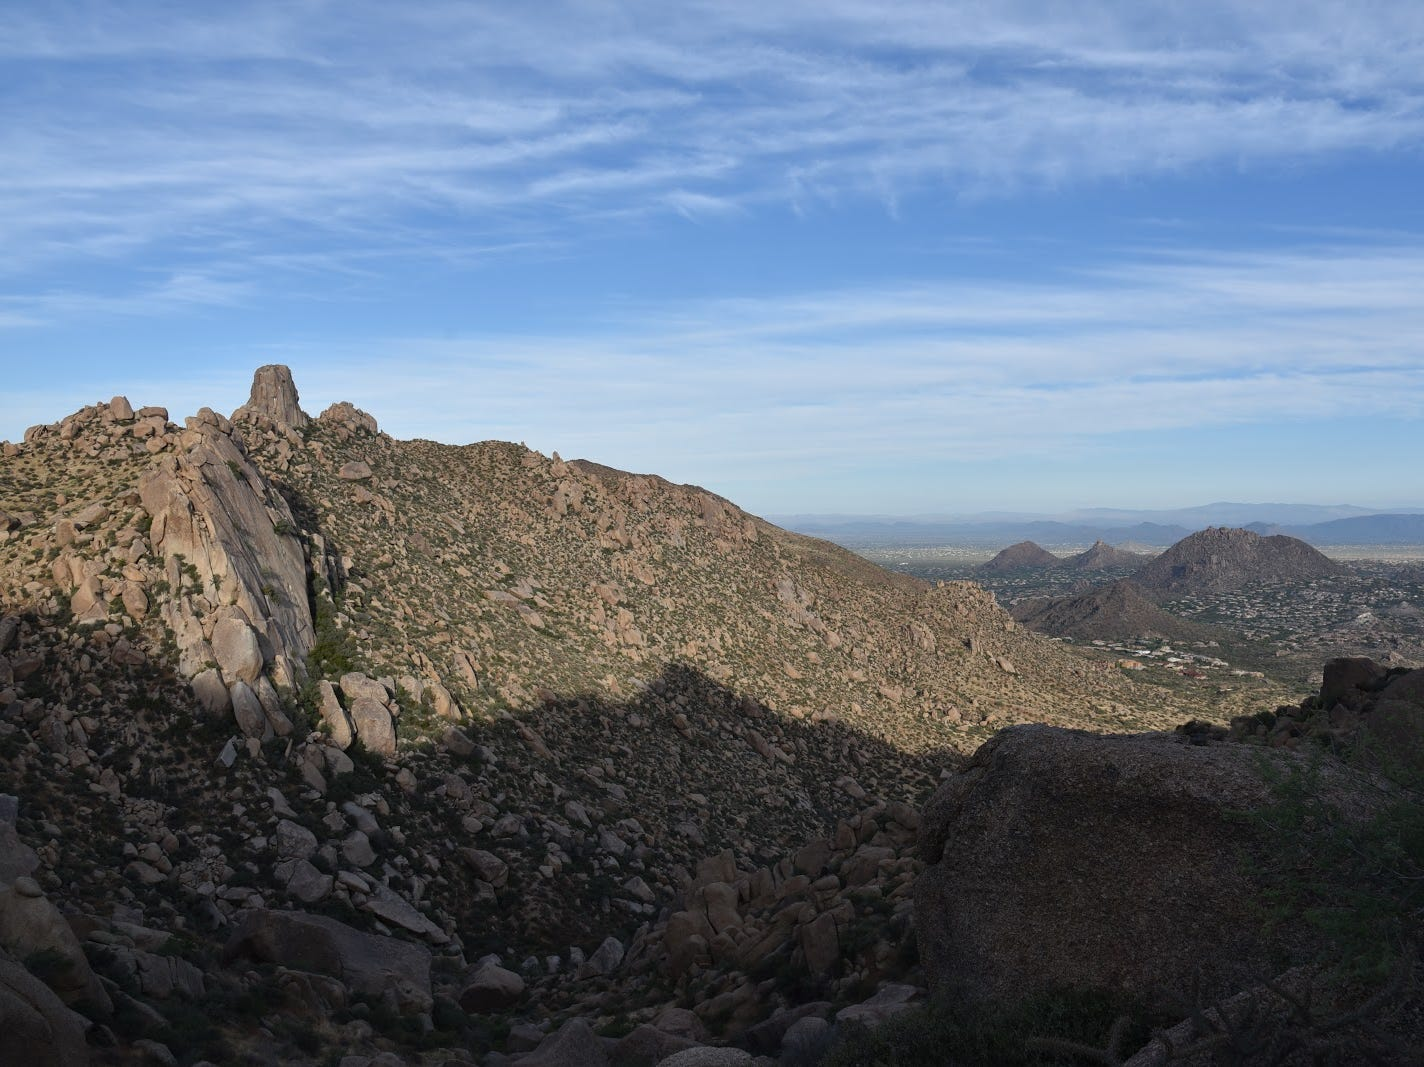 Looking northwest from the Tom's Thumb trail.